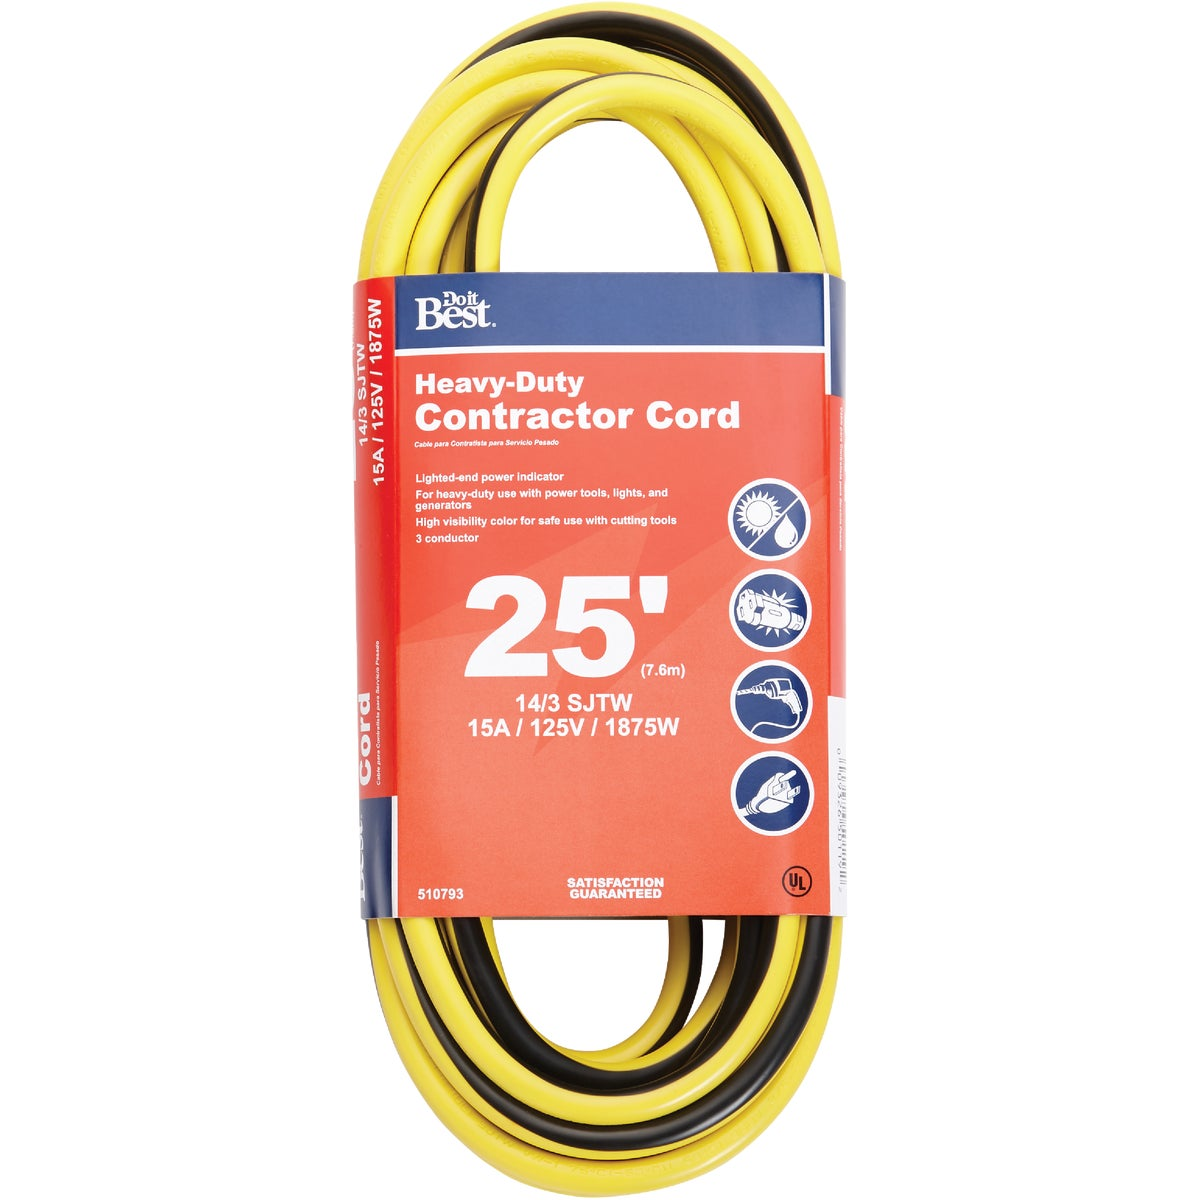 25' 14/3 LIGHTED CORD